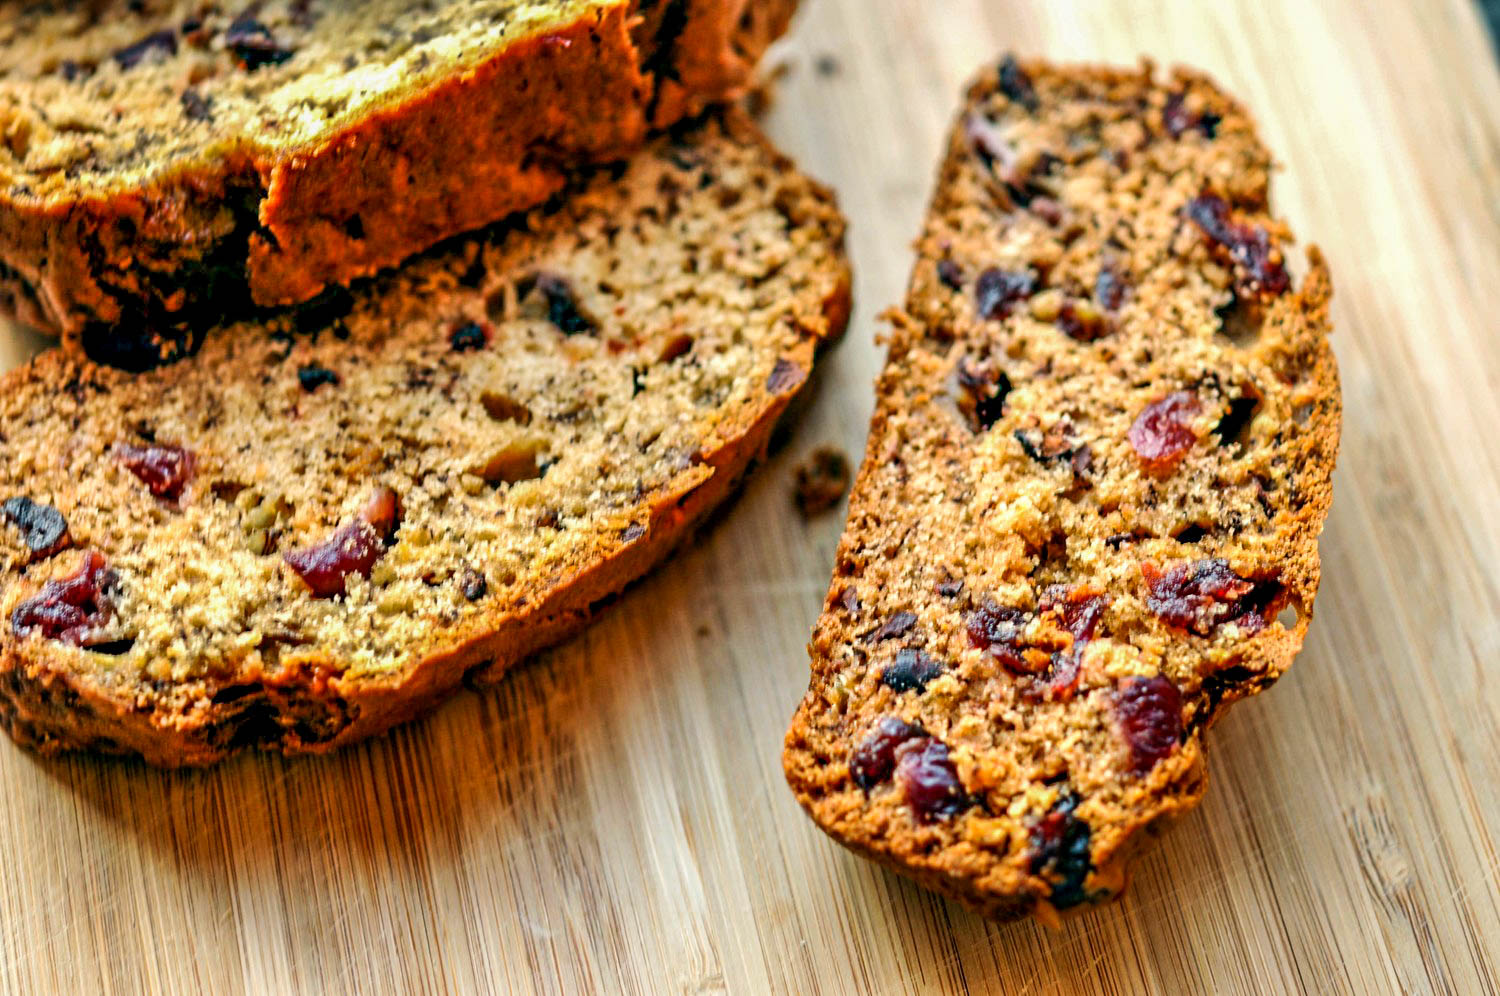 Banana Bread with Cacao Nibs & Dried Cranberries - a healthy, delicious snack or dessert recipe.